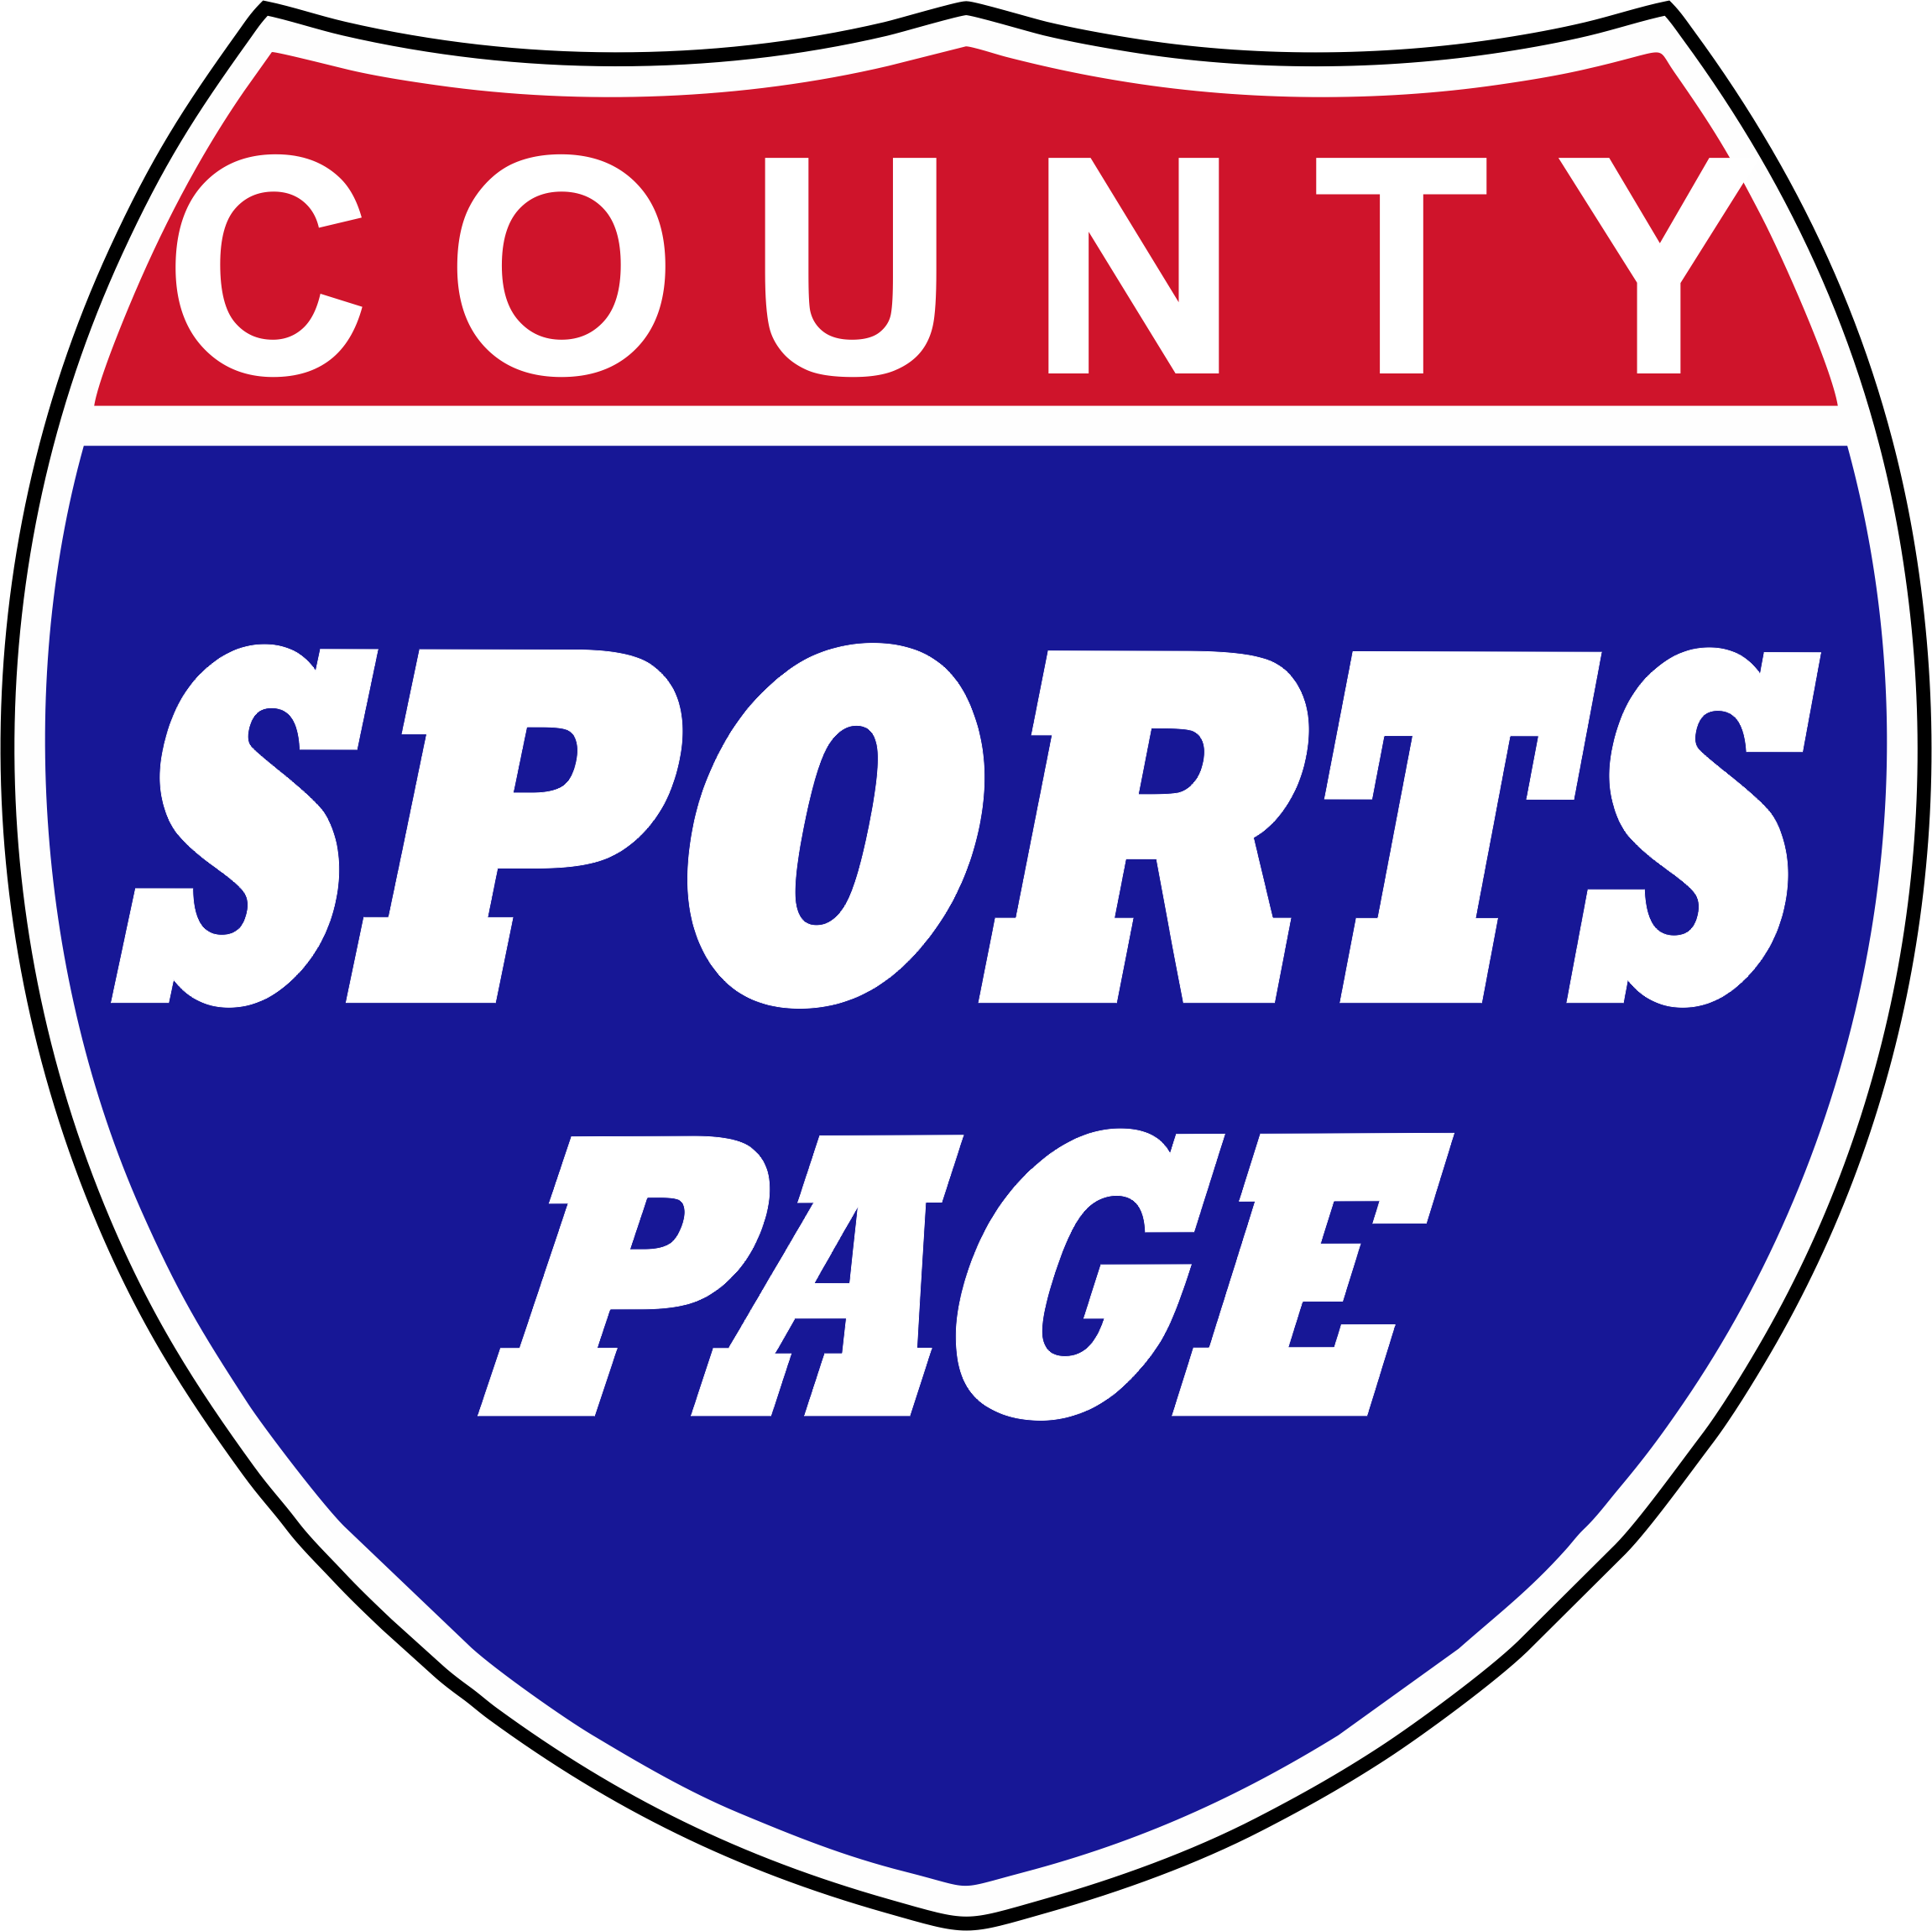 county sports page logo